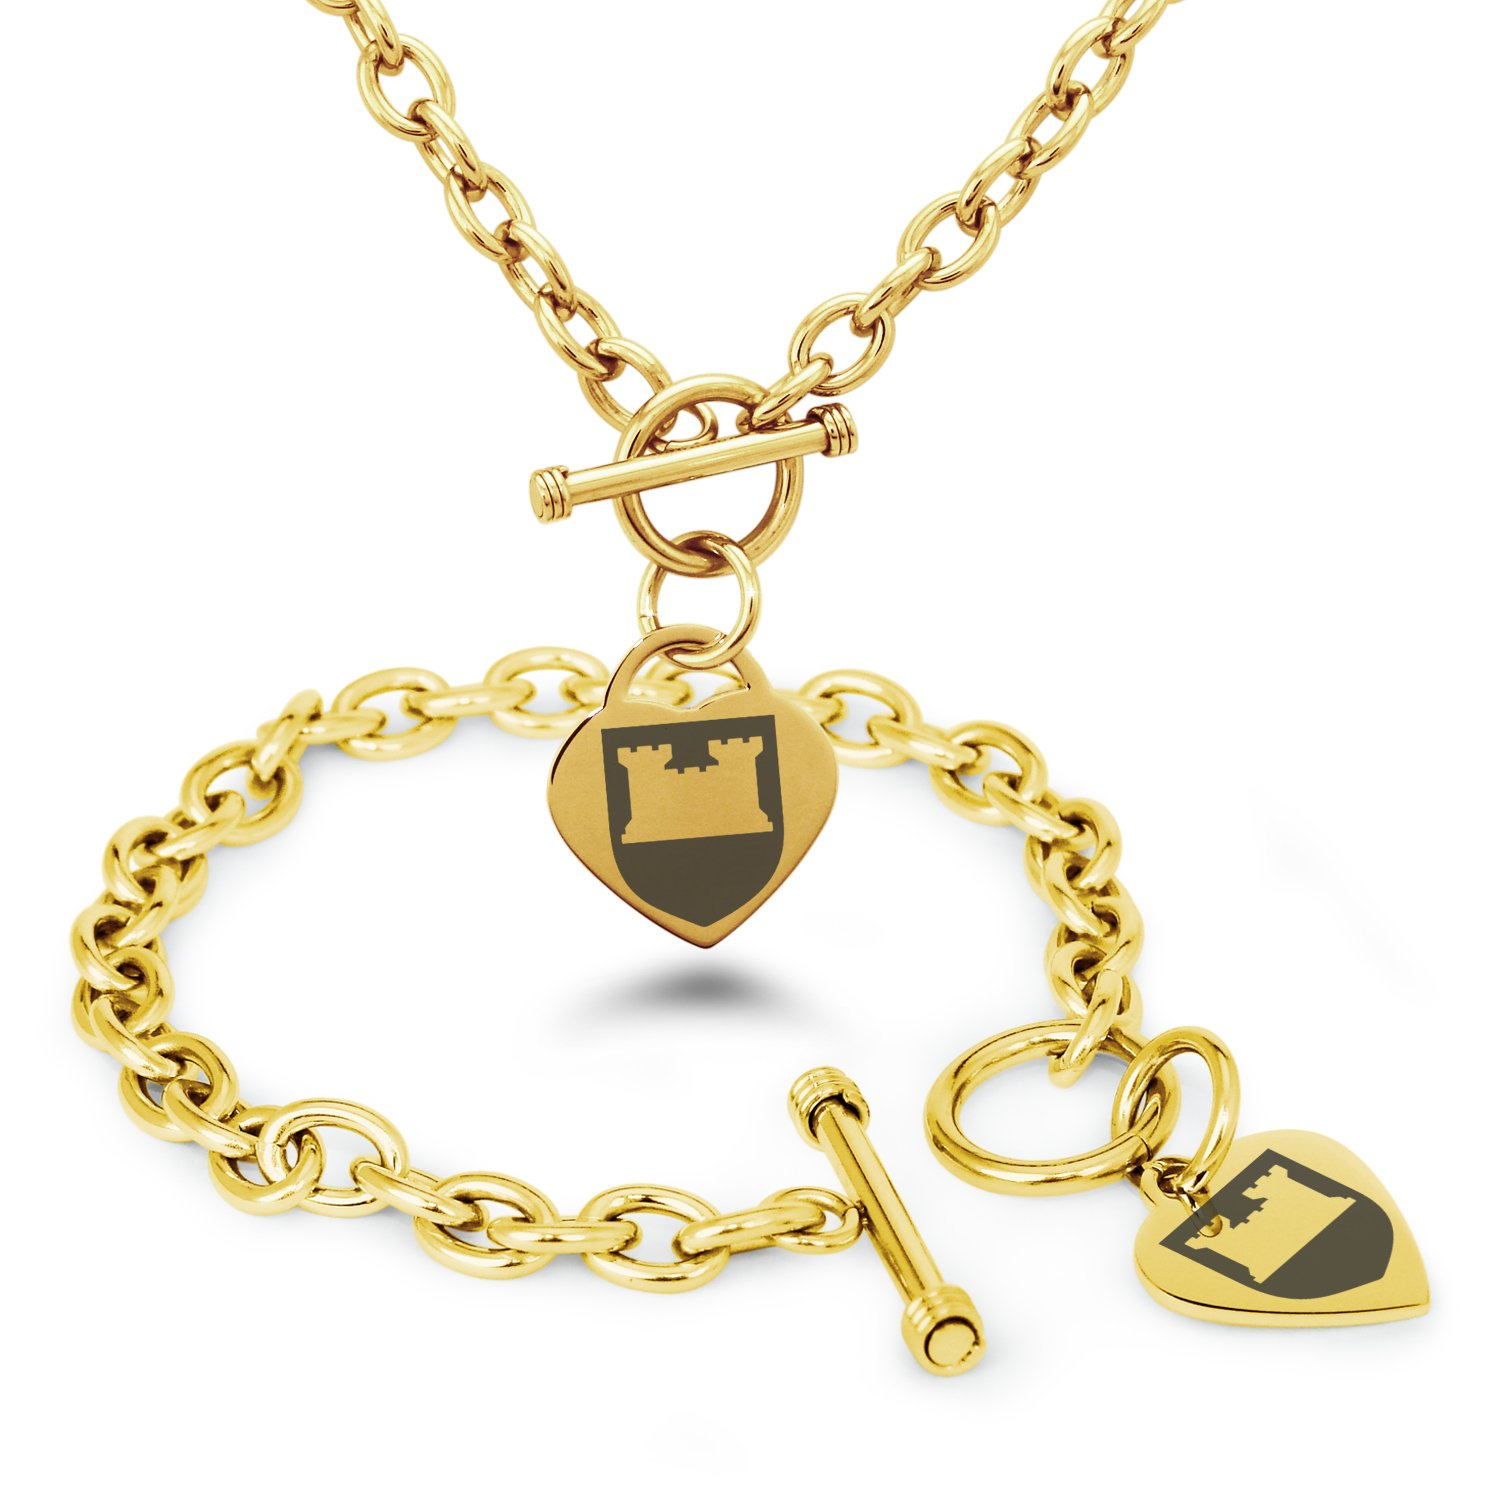 Tioneer Gold Plated Stainless Steel Castle Protection Coat of Arms Shield Symbols Heart Charm, Bracelet & Necklace Set